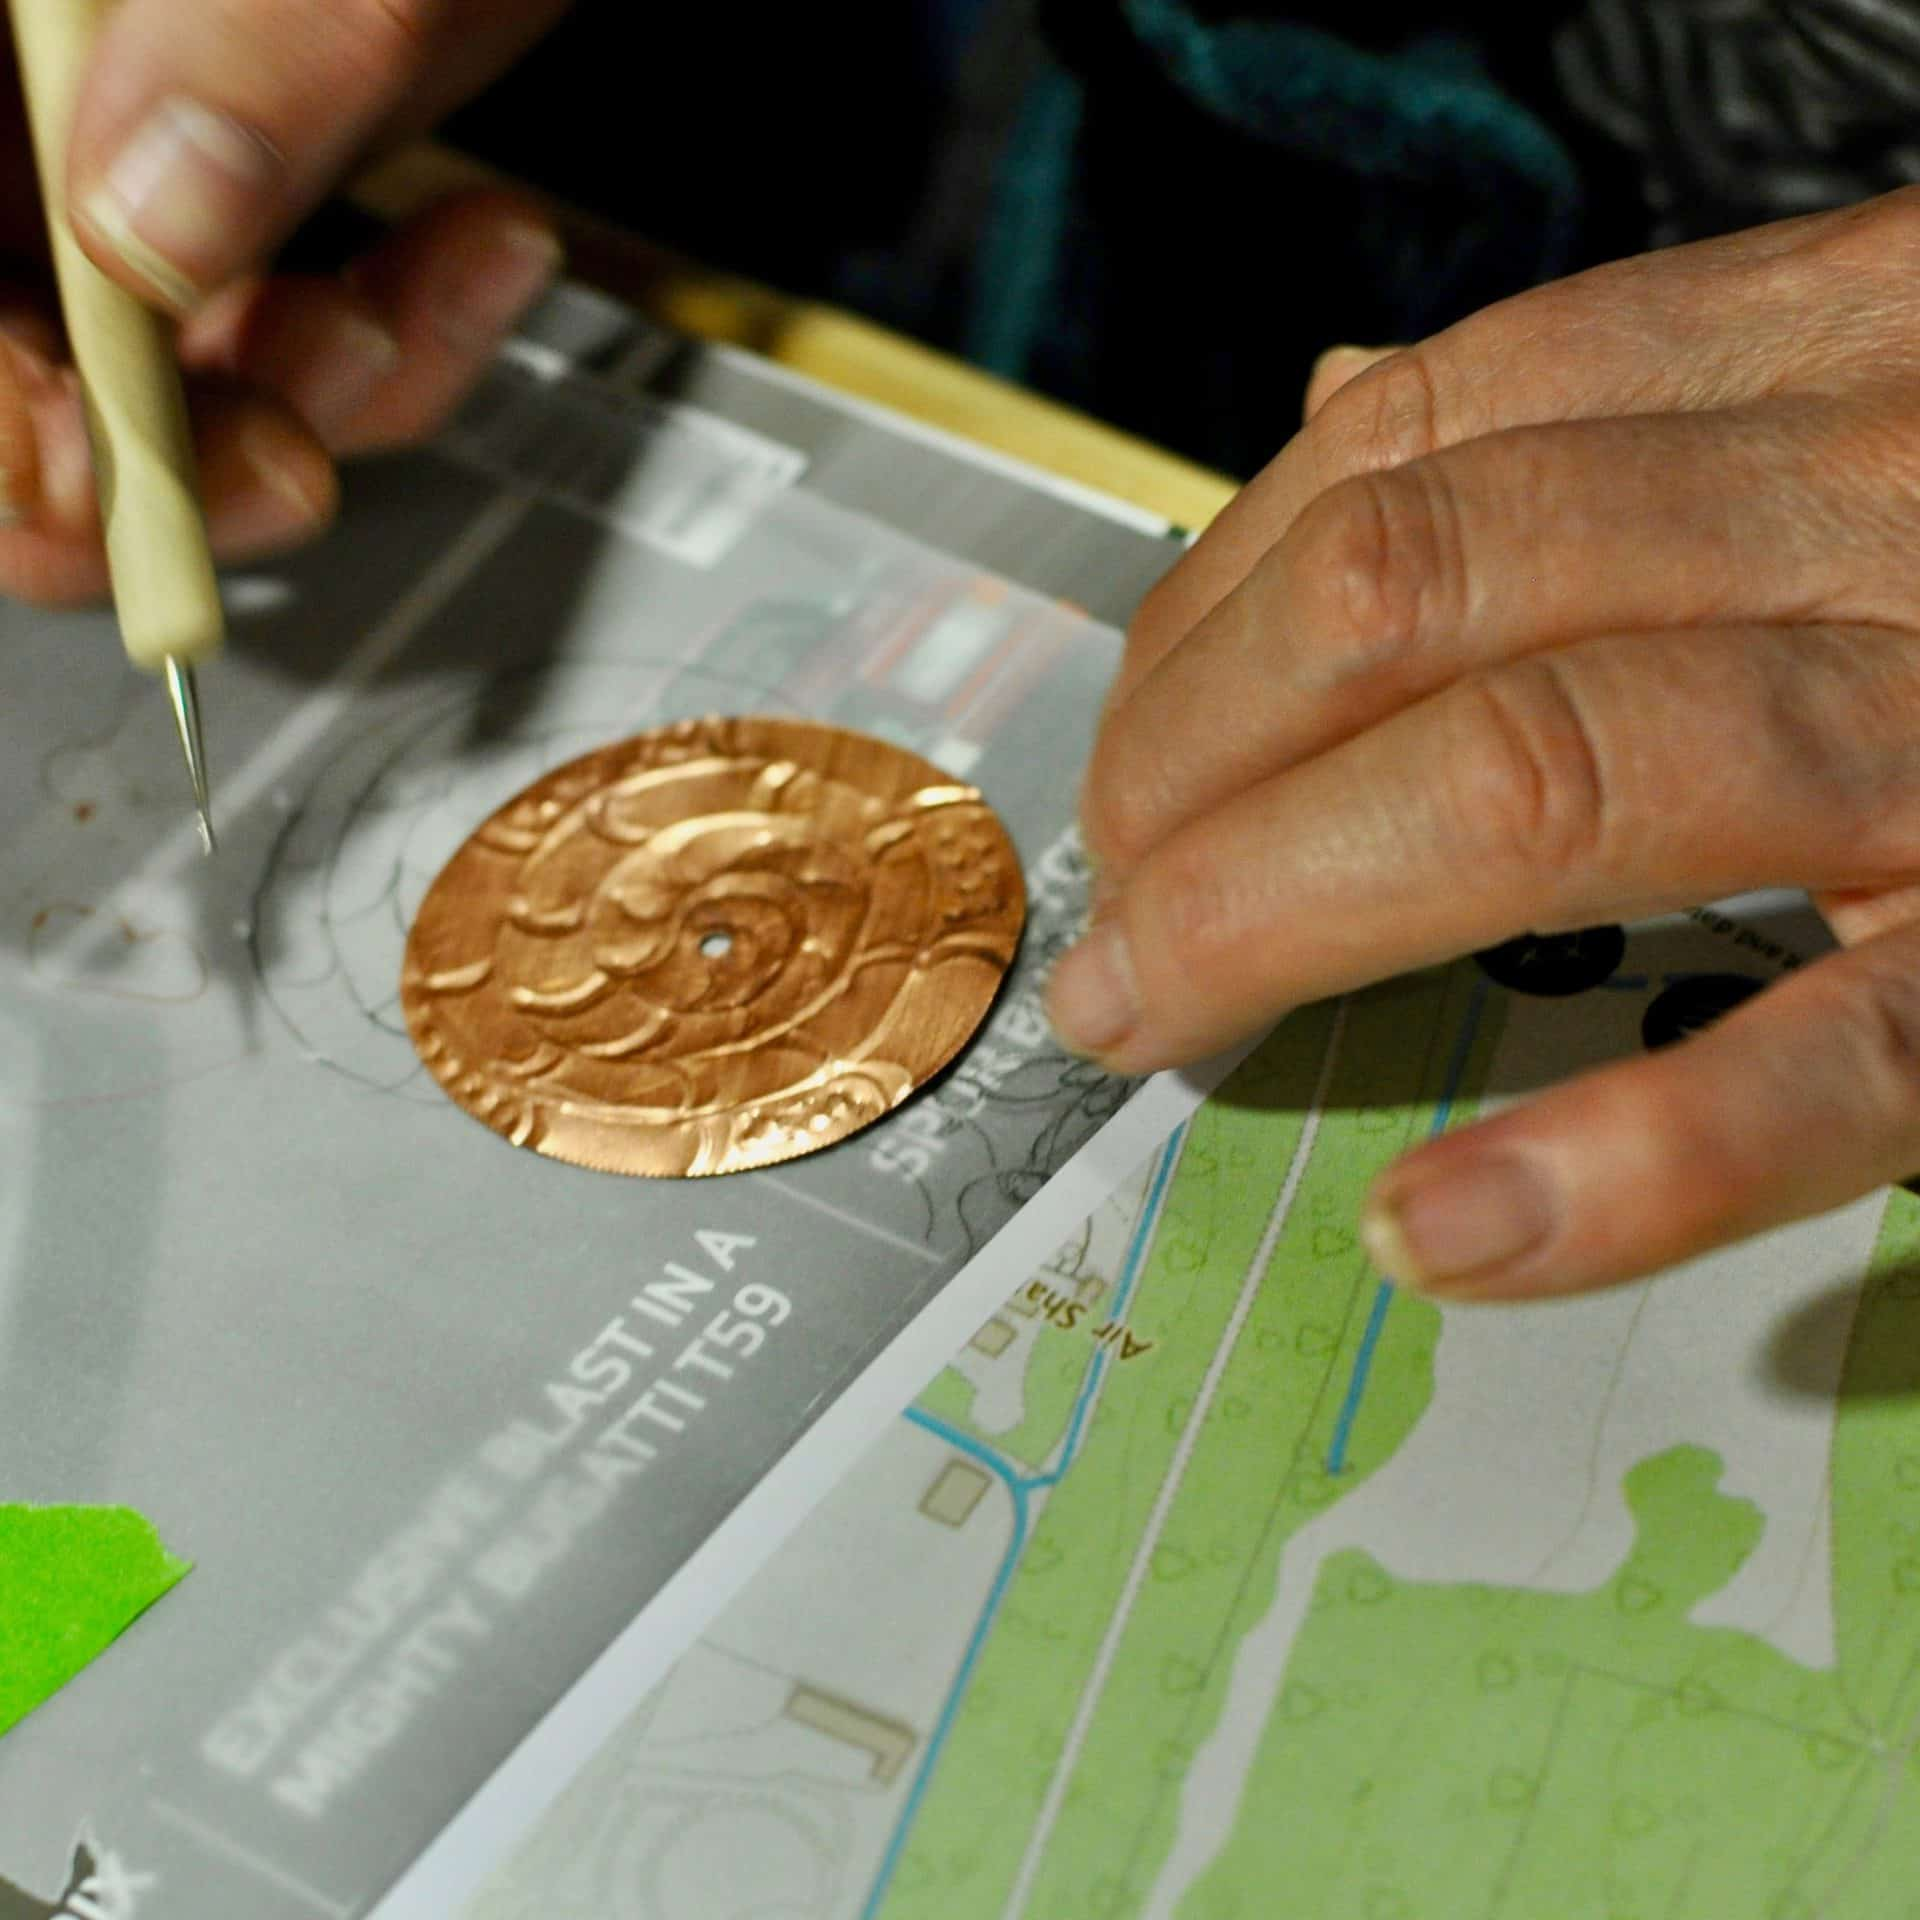 Kim Knowles embossing copper